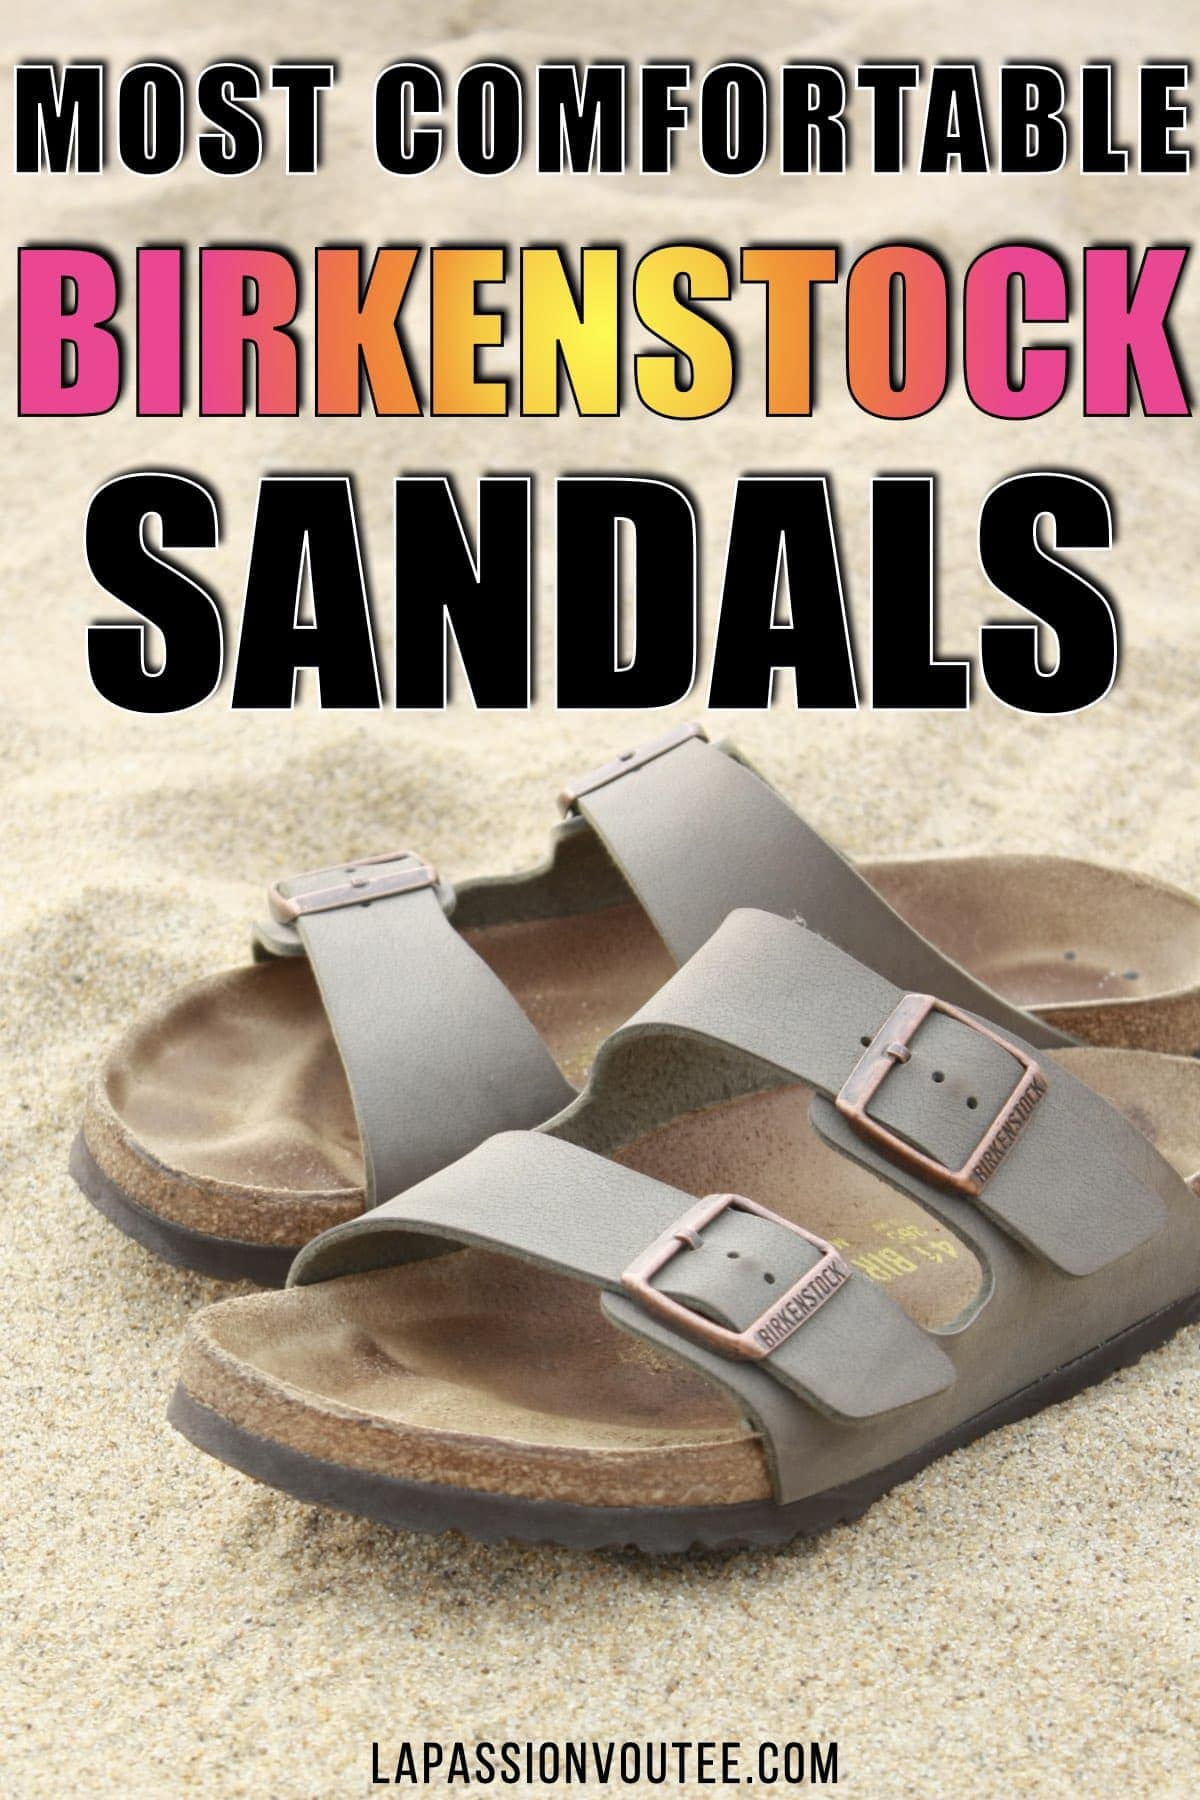 Are Birkenstocks worth it? Debunking the hype around the best Birkenstocks for women in this ultimate guide to the best Birkenstock sandals everyone is talking about.